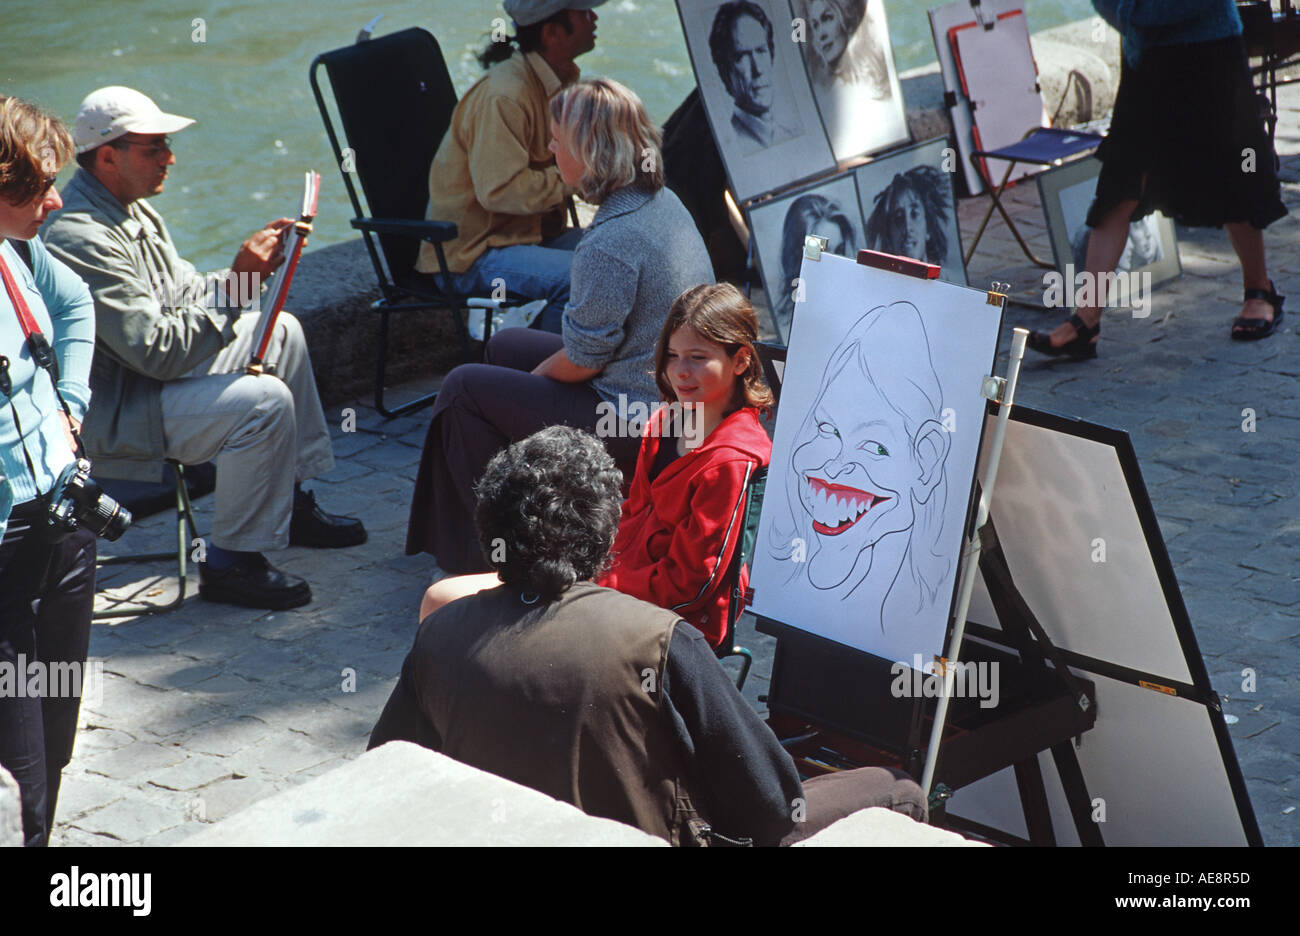 Youngster having a caricature of herself drawn by a street artist paris France - Stock Image